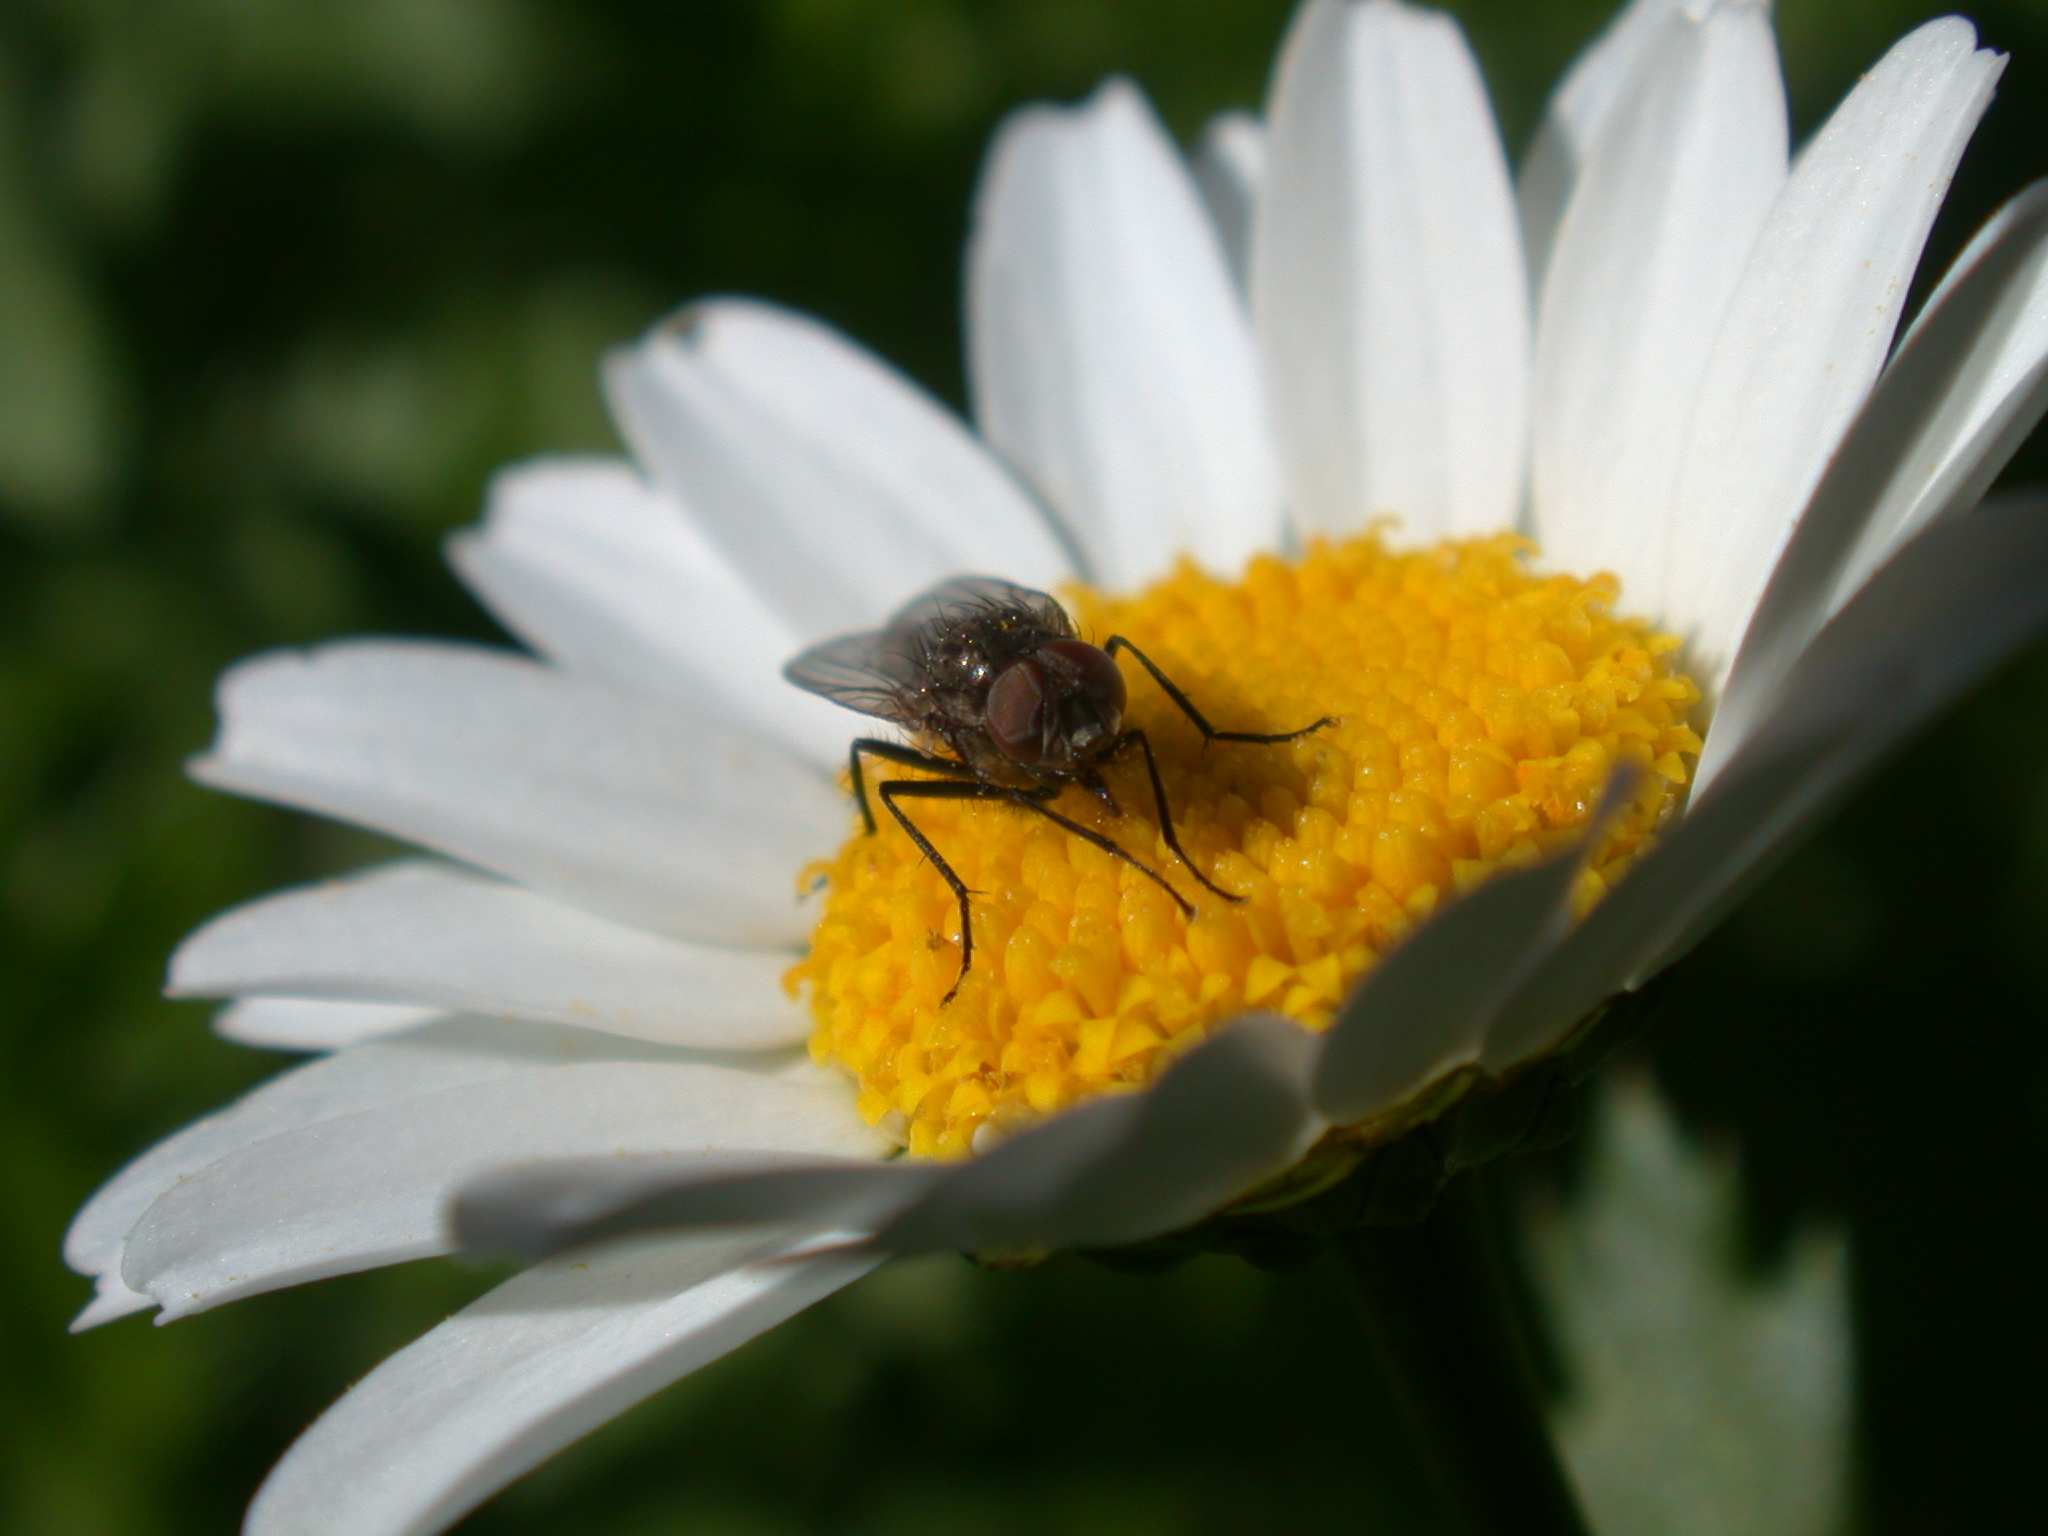 fly on a flower petals yellow horsefly black wings white hairs